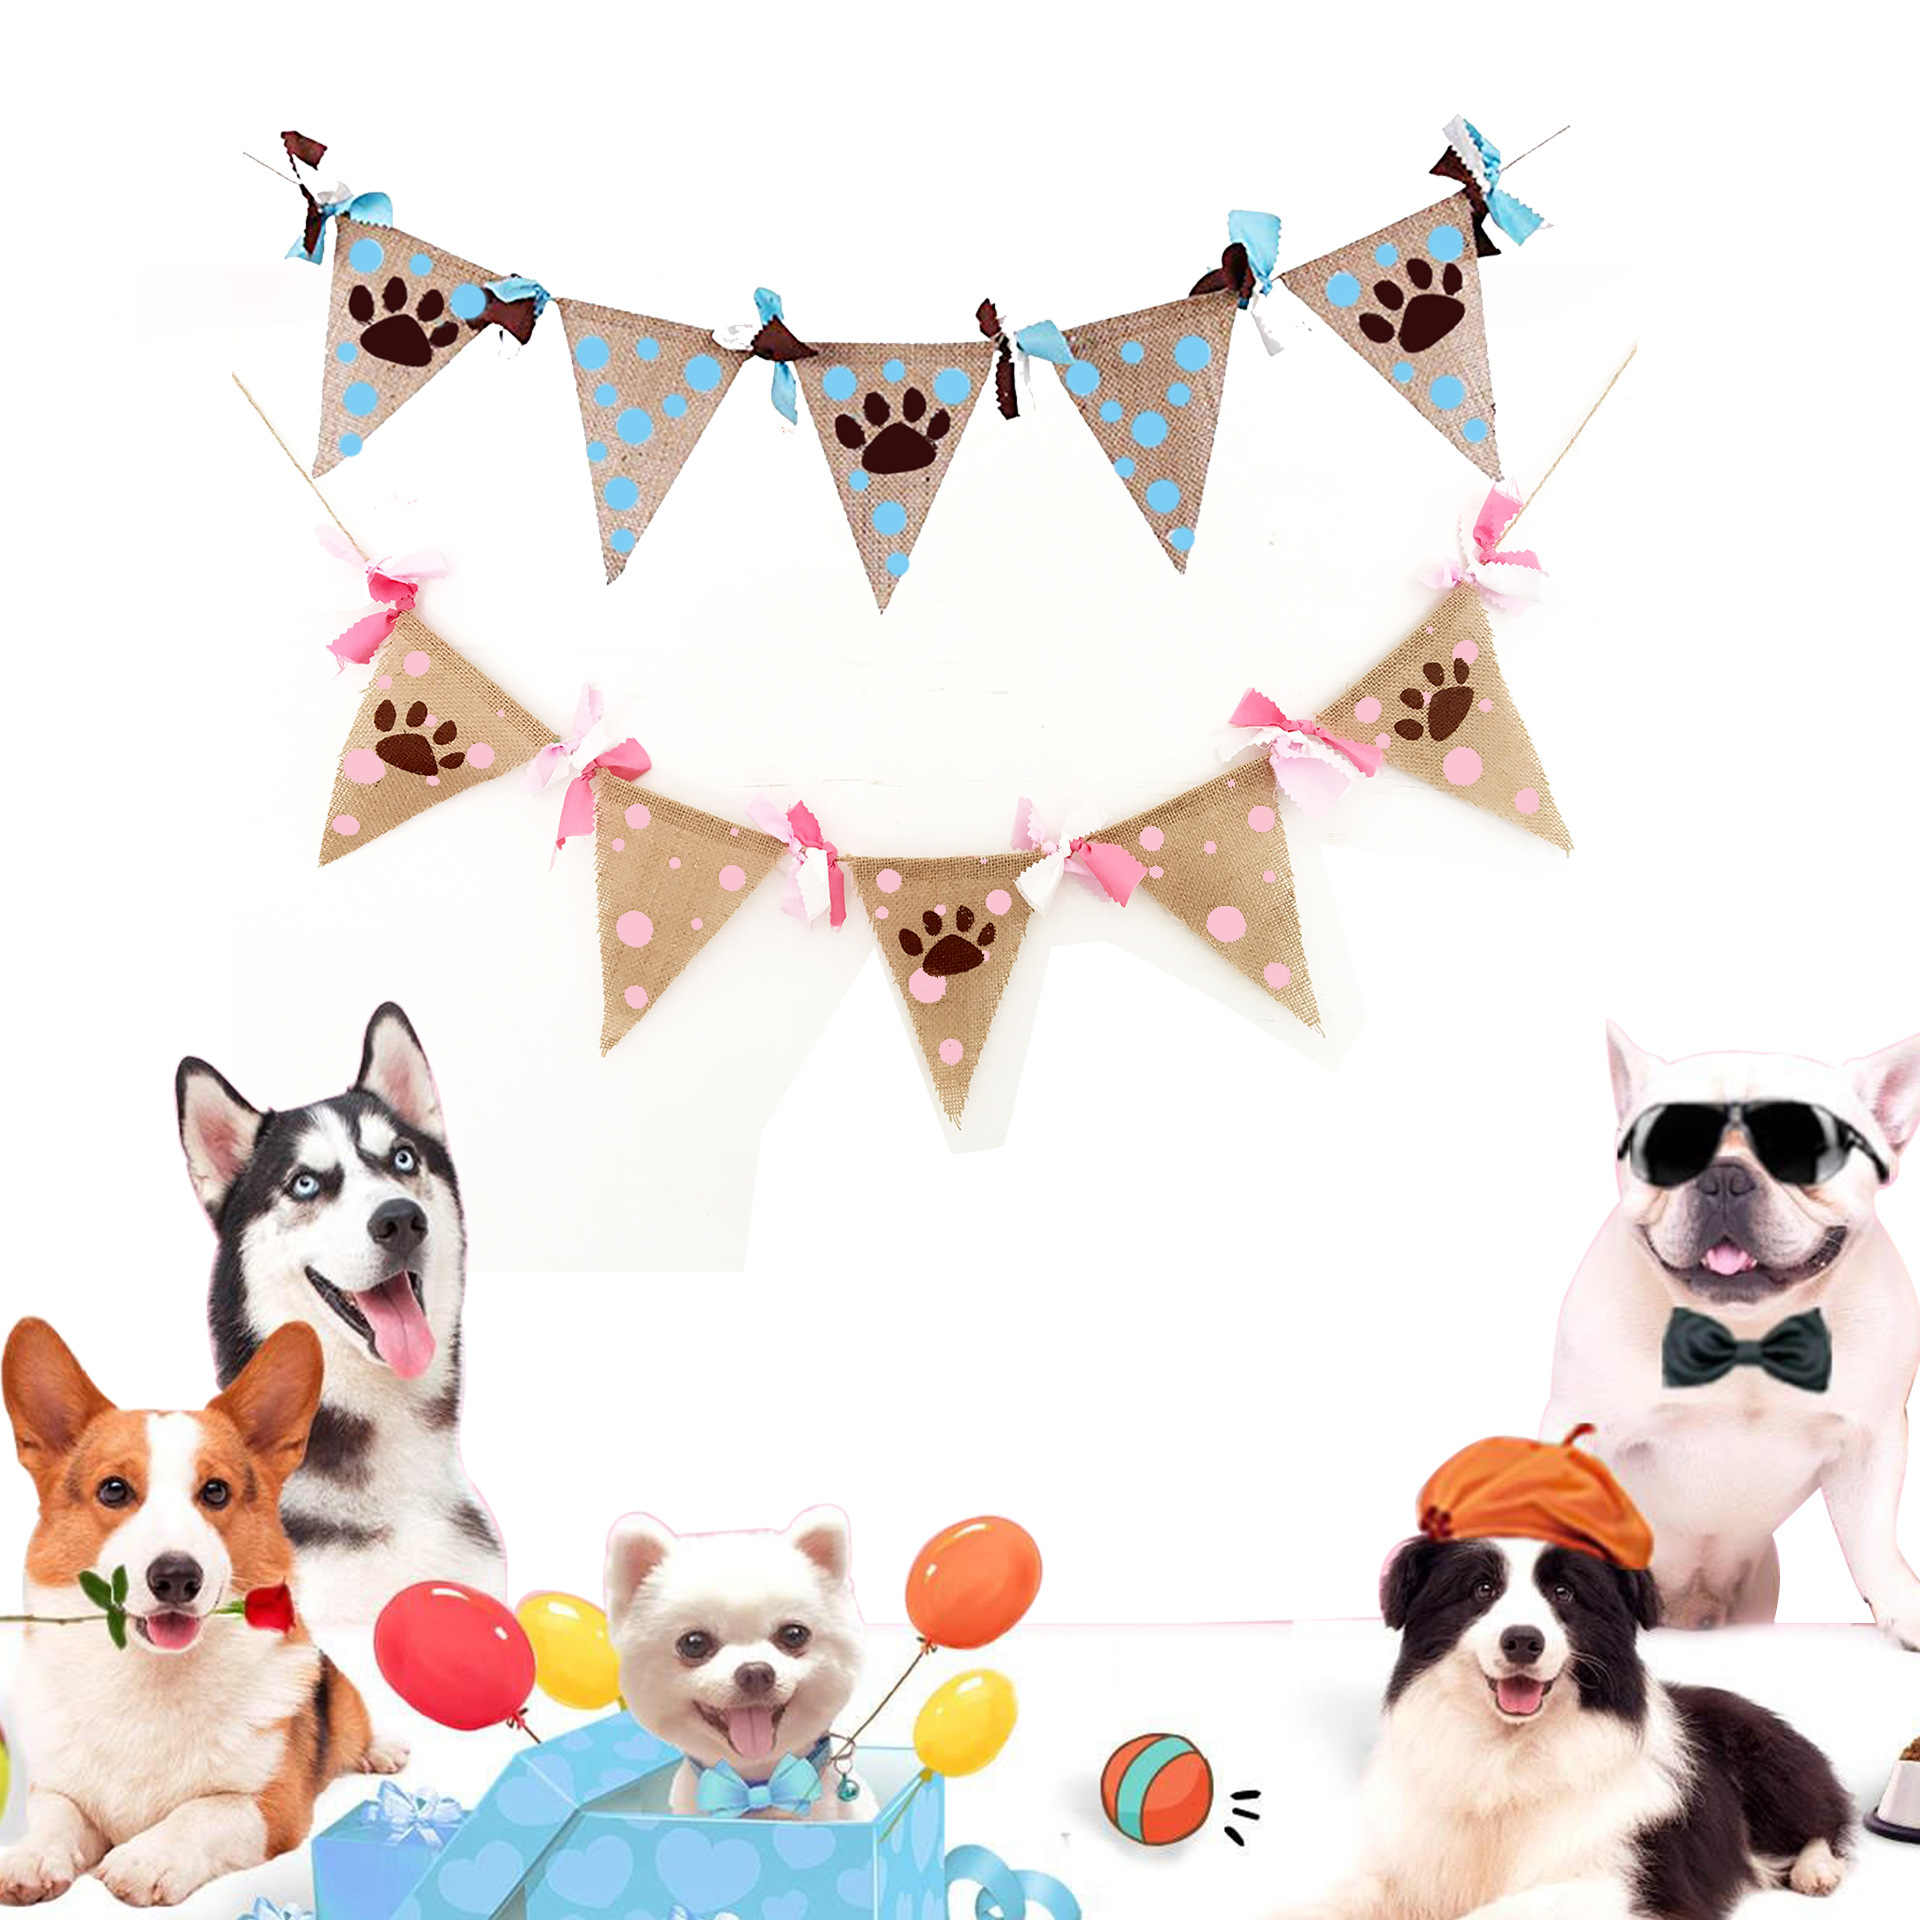 Pet Dog Birthday Party Decorations Supplies Claw Footprint Bunting Banner Hanging Garland Christmas Doghouse